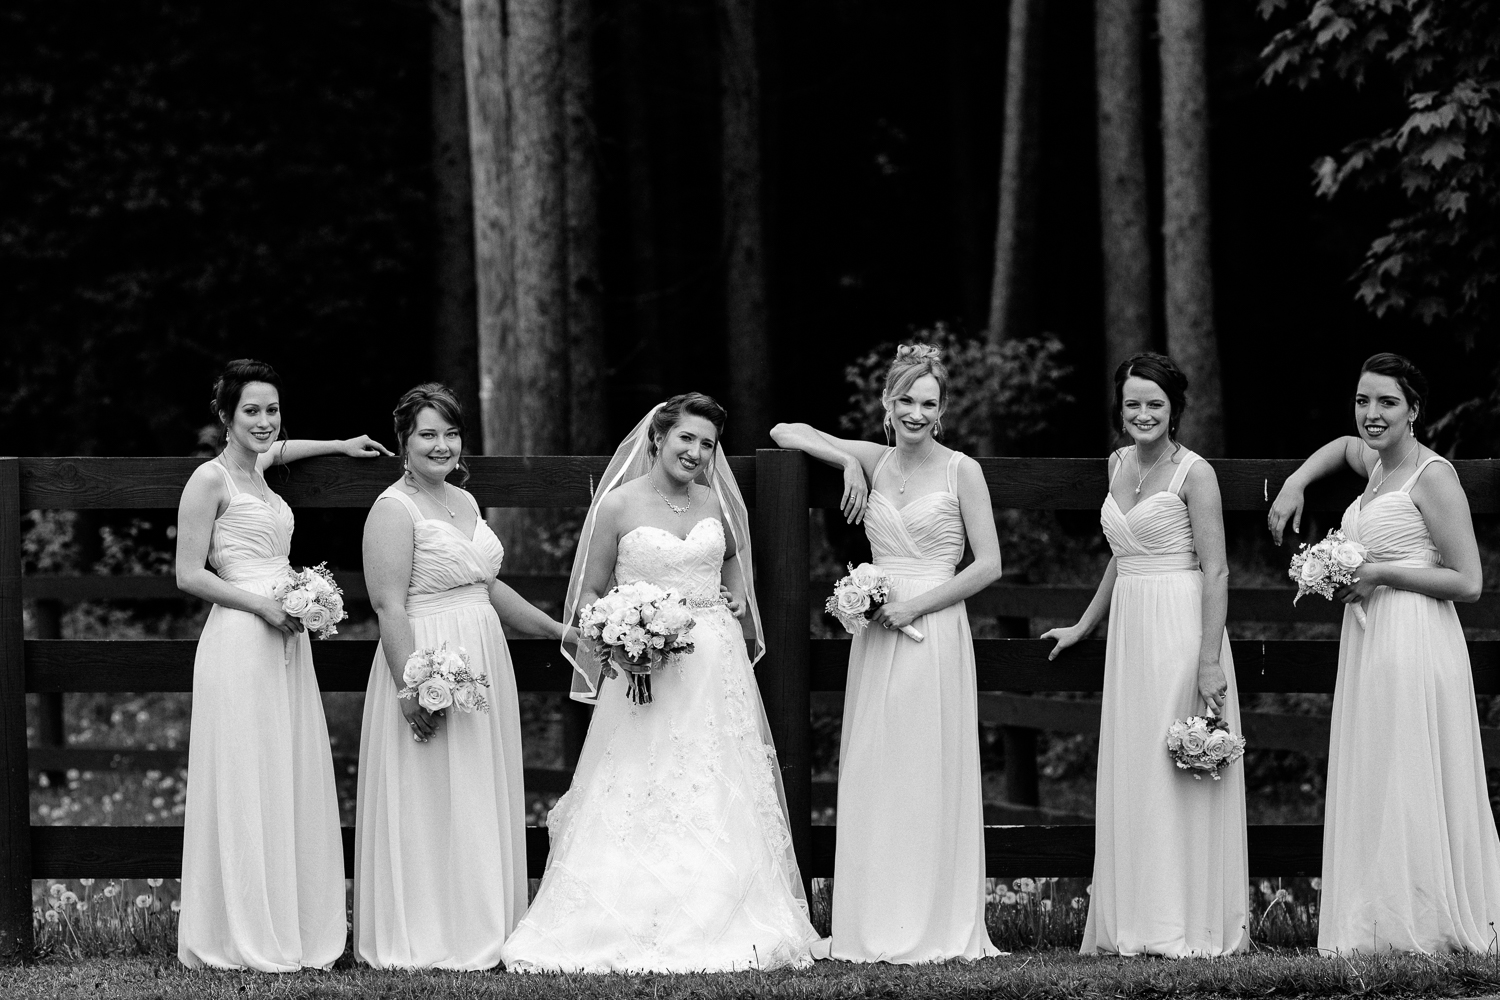 Black and white image of bridesmaids and bride leaning against a fence.